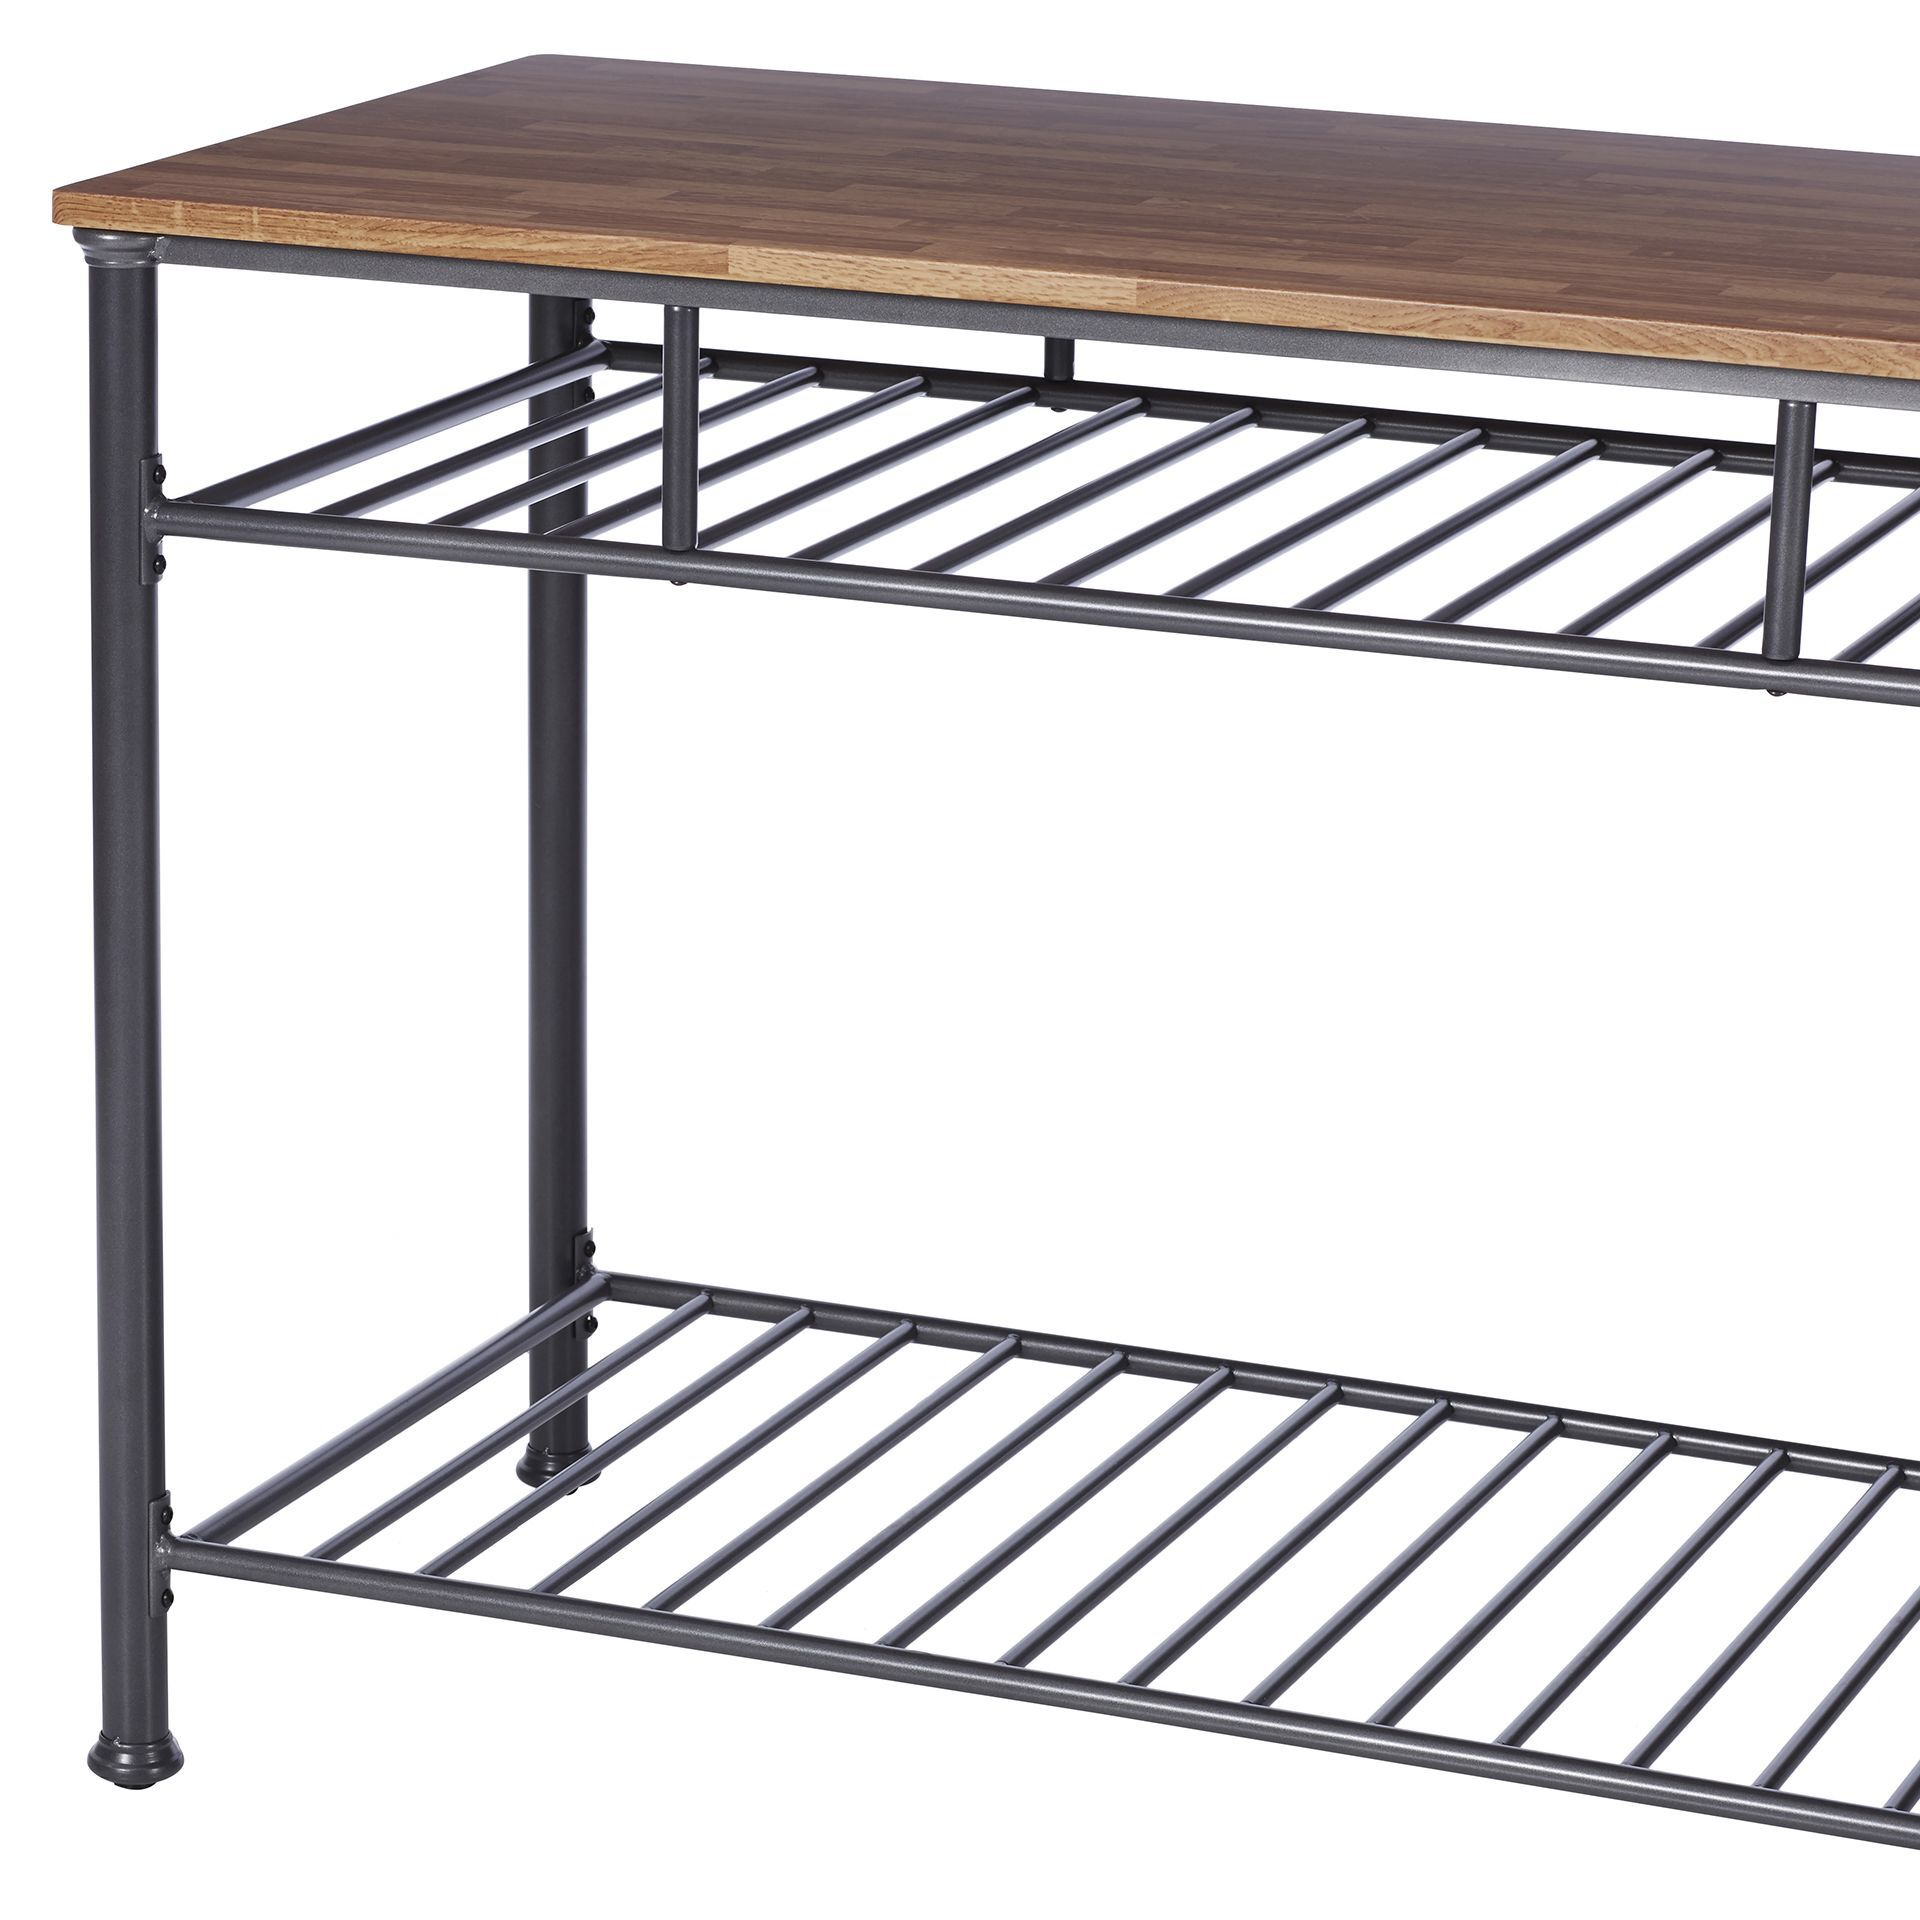 Tania Prep Table With Wood Top Traditional Kitchen Island Kitchen Prep Table Kitchen Style